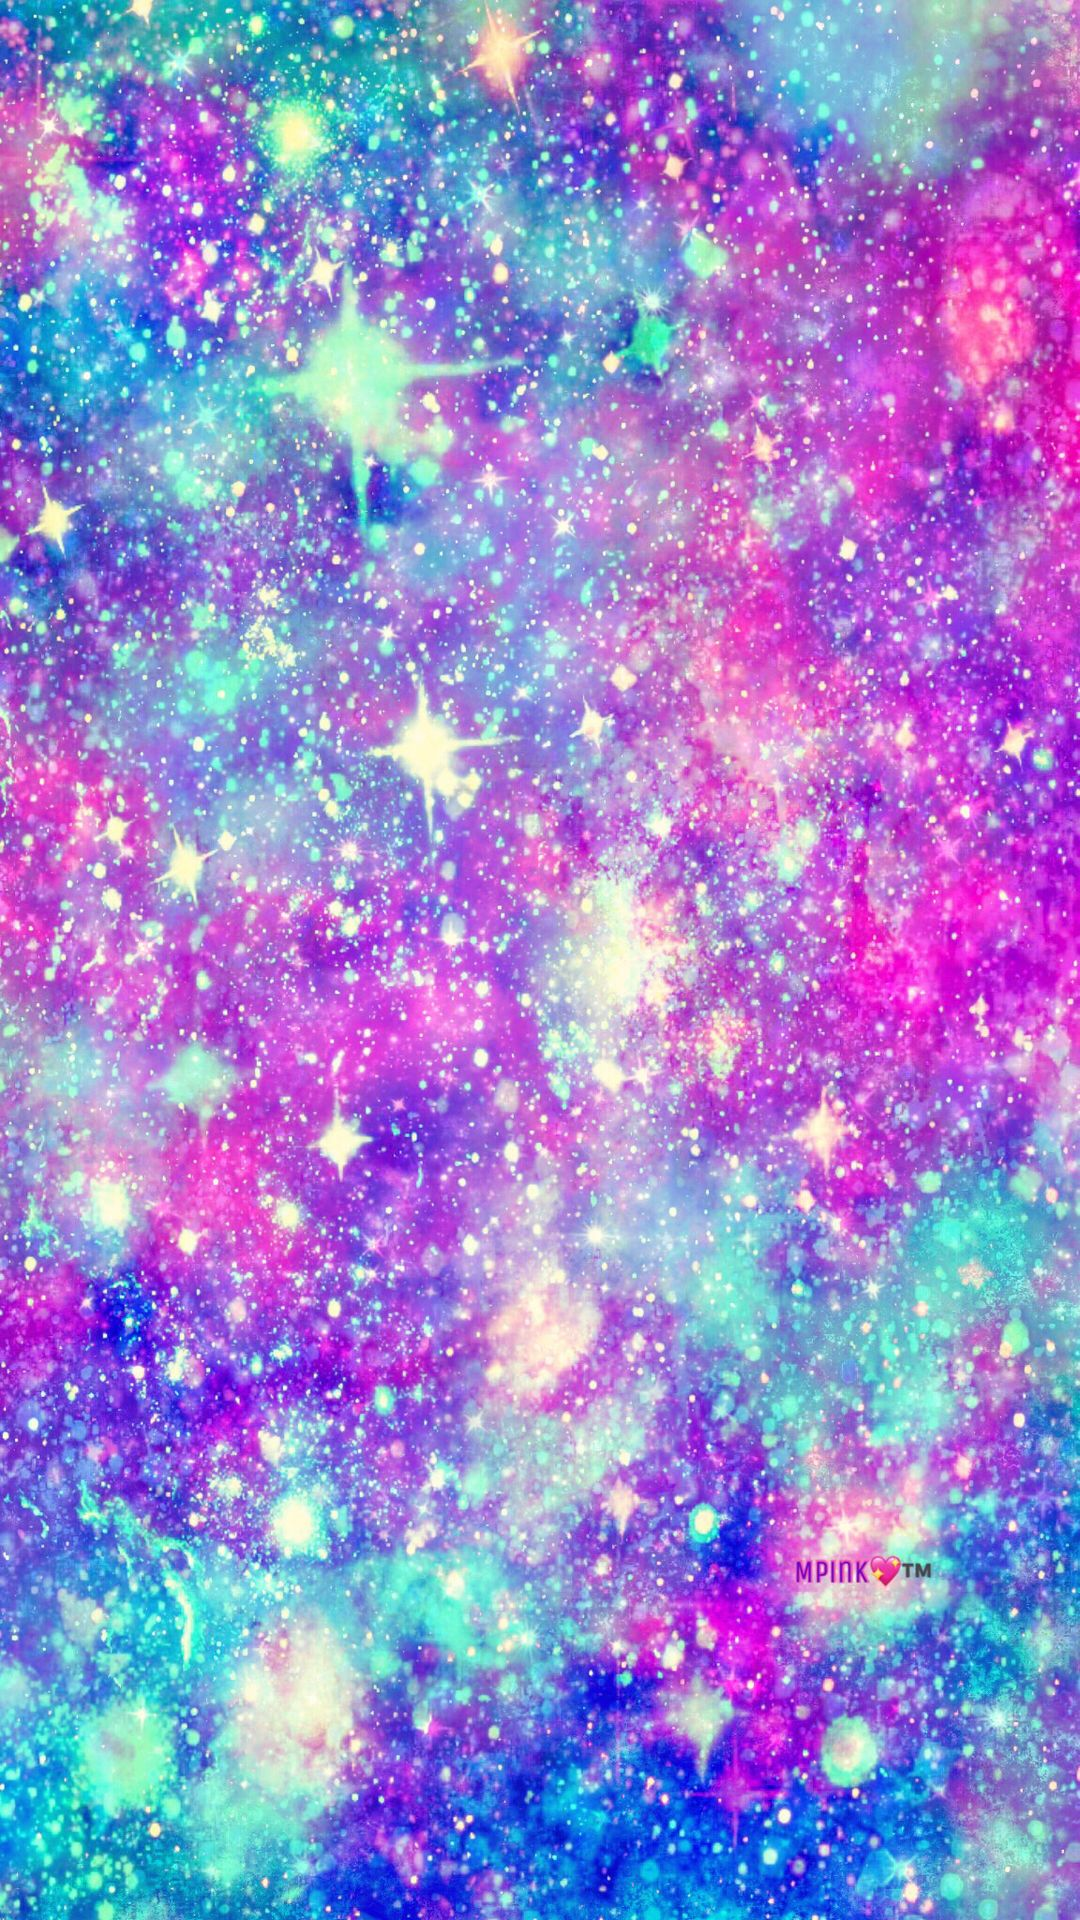 Glacial Galaxy Wallpaper Androidwallpaper Iphonewallpaper